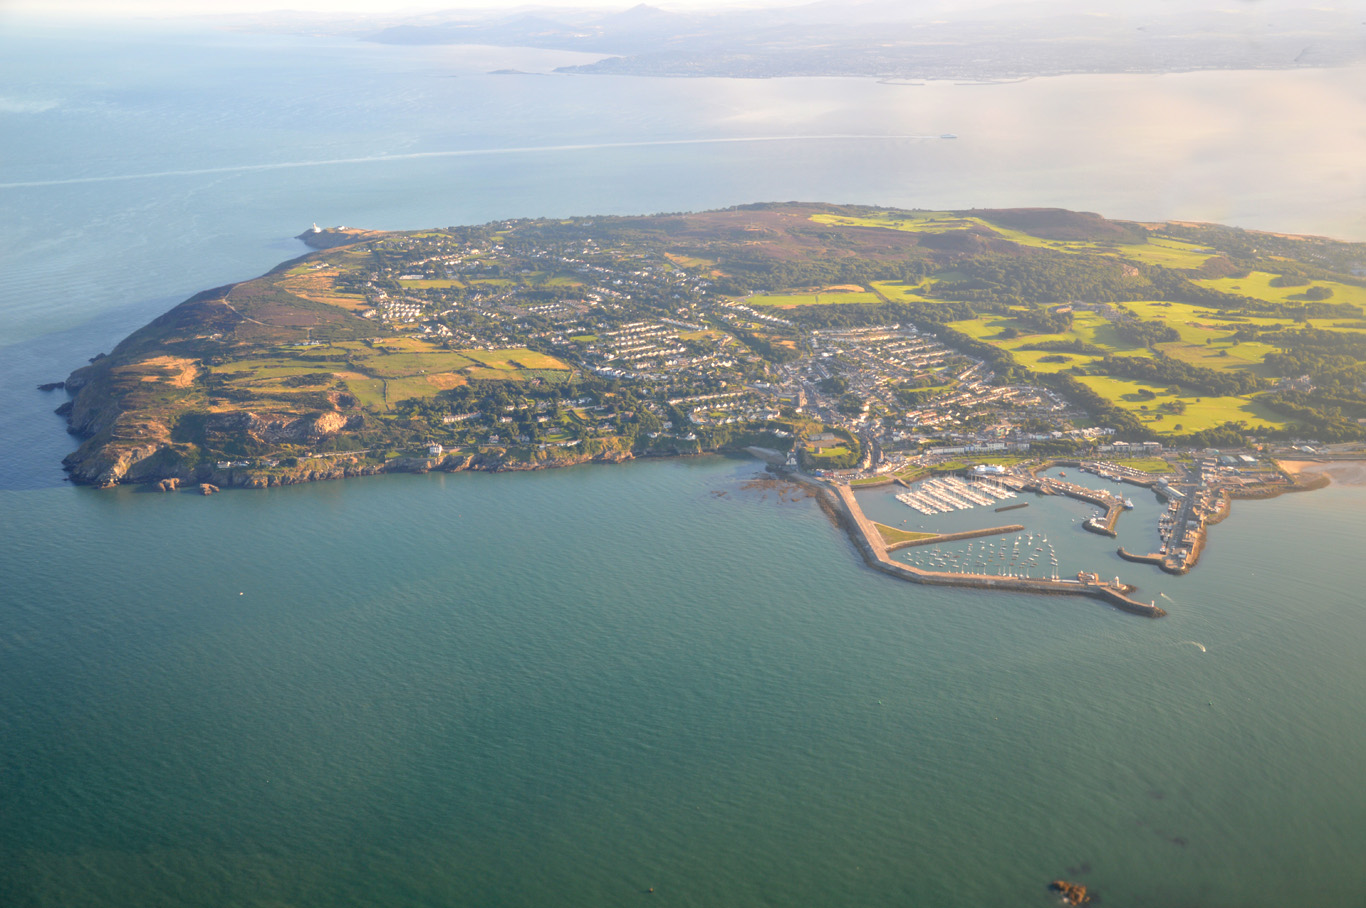 Howth Peninsula seen from an airplane while descending to Dublin Airport